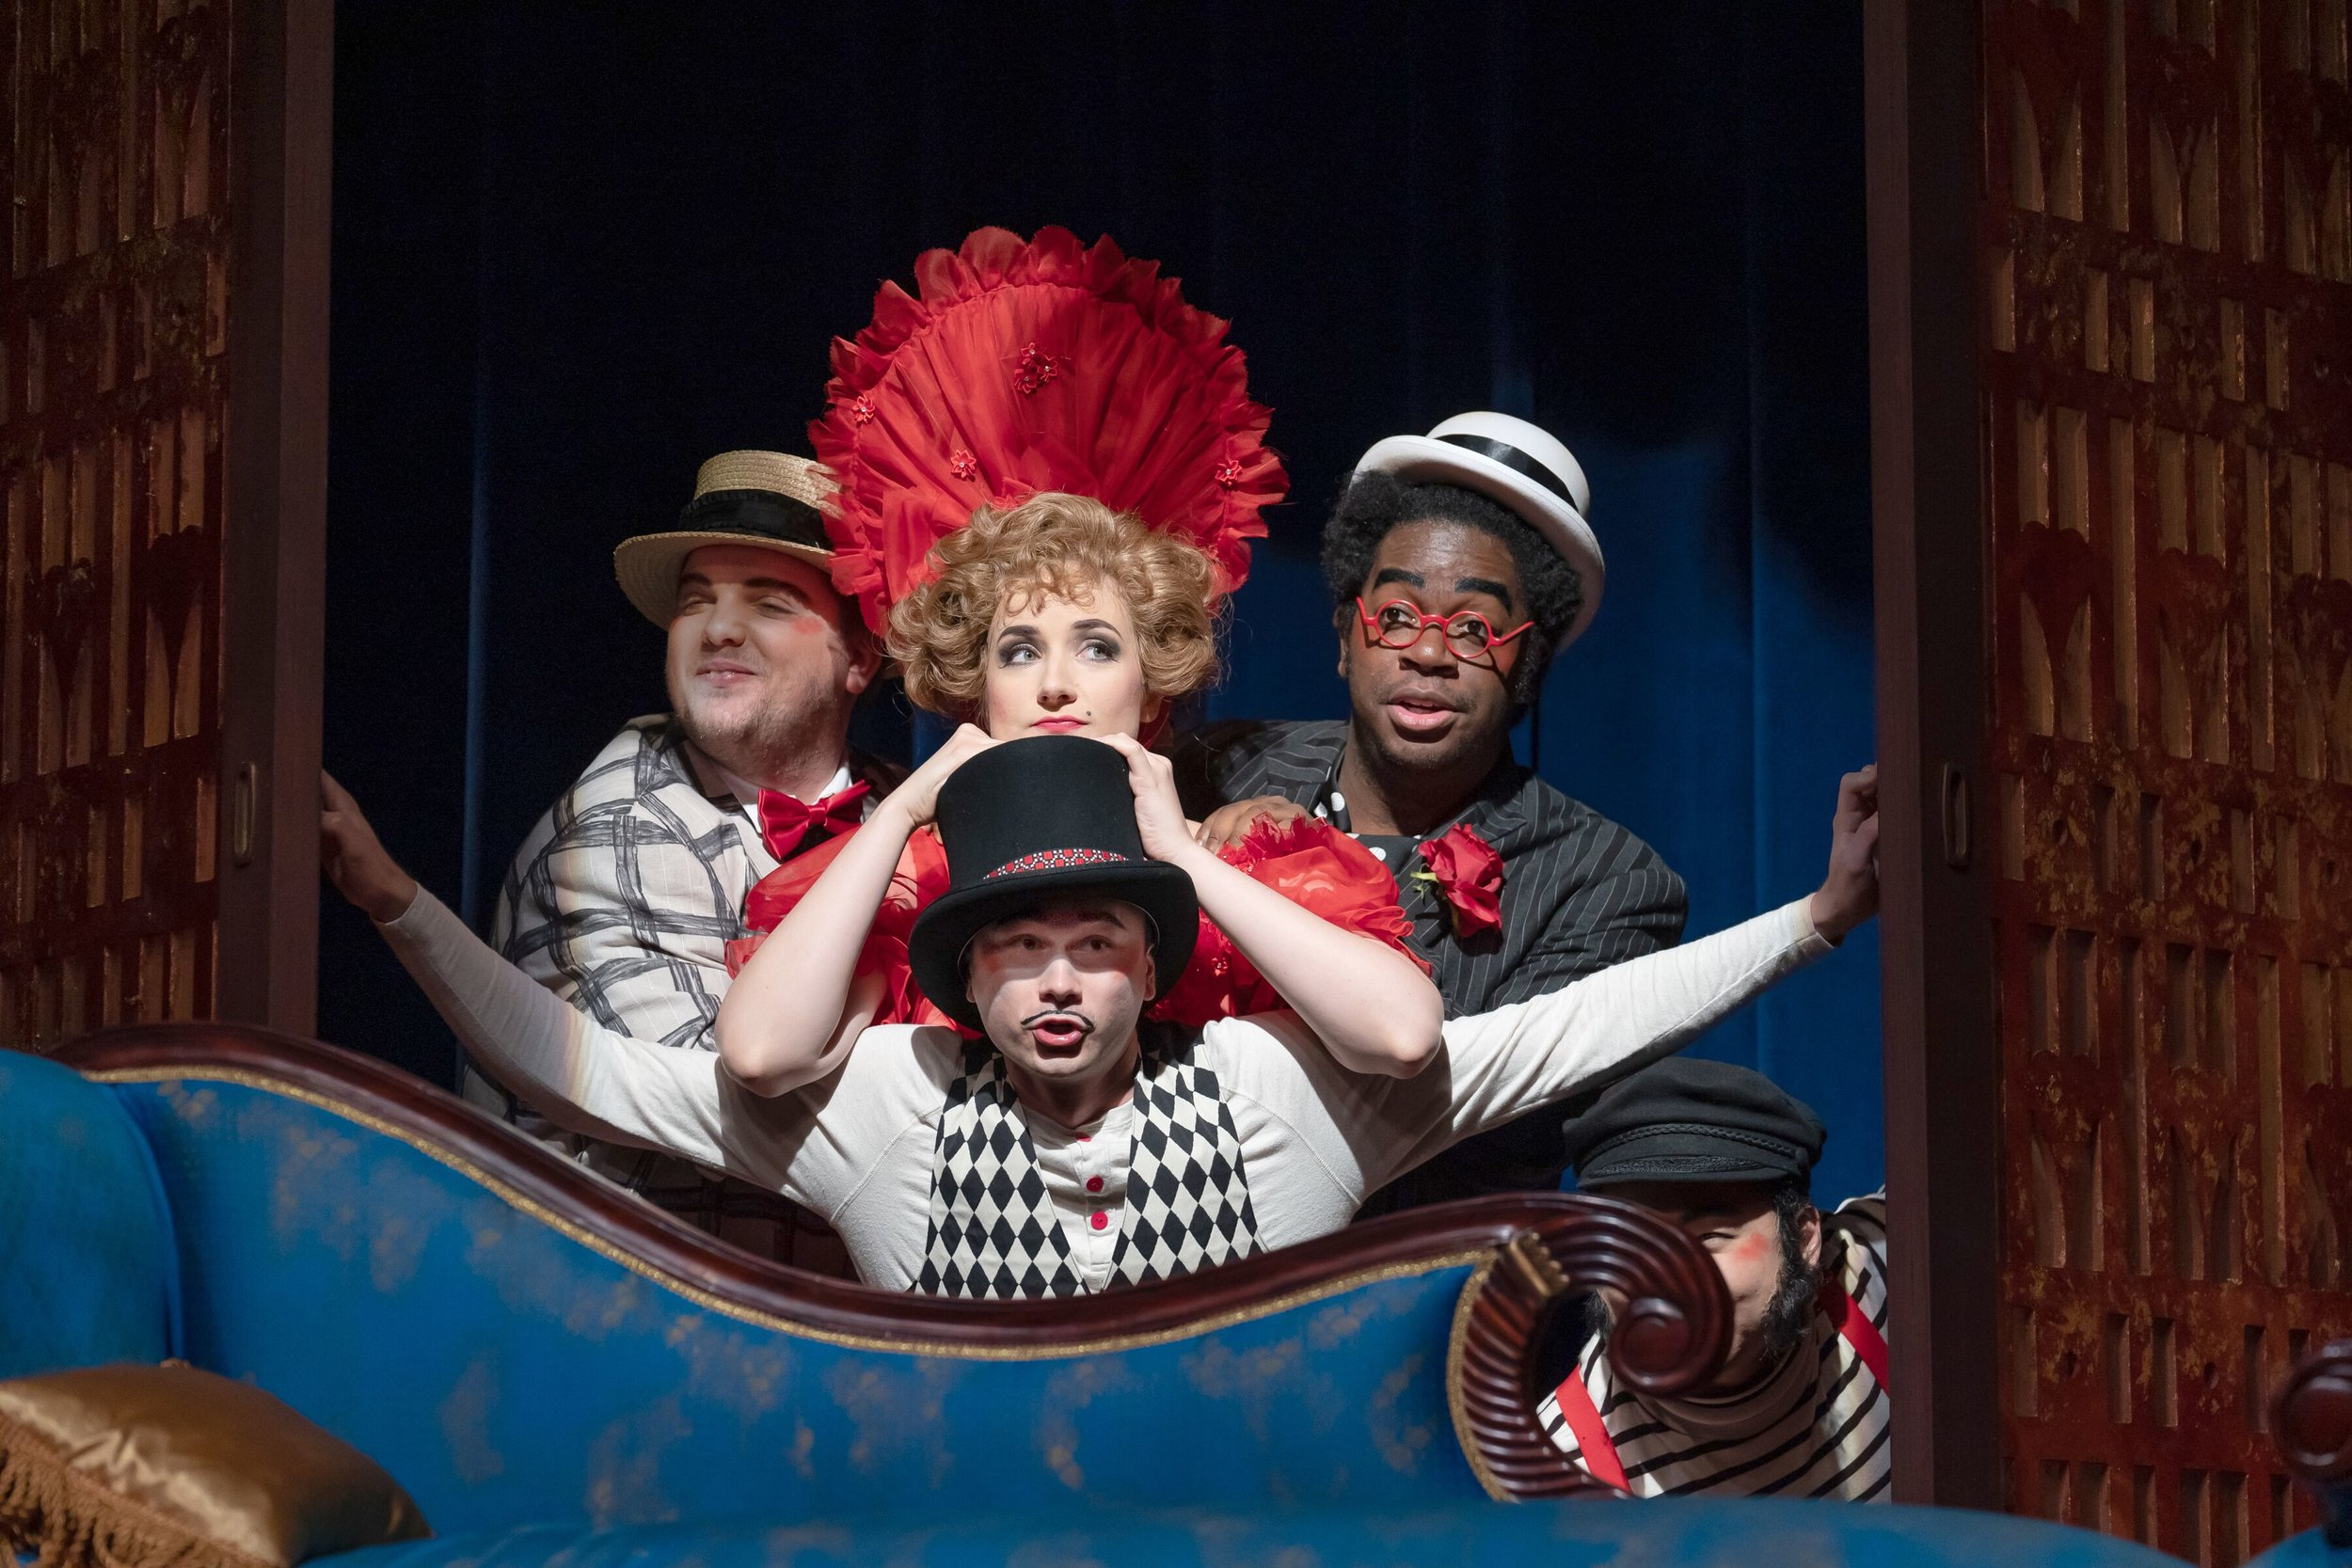 l to r .:Victor Cardamone as Scaramuccio, Alexandra Nowakowski as Zerbinetta, Ron Dukes as Truffaldin, and  (bottom)  Michael Pandolfo as Harlekin taking their turn in the Opera/comedy mashup. Photo by Scott Suchman; courtesy of Wolf Trap Opera.